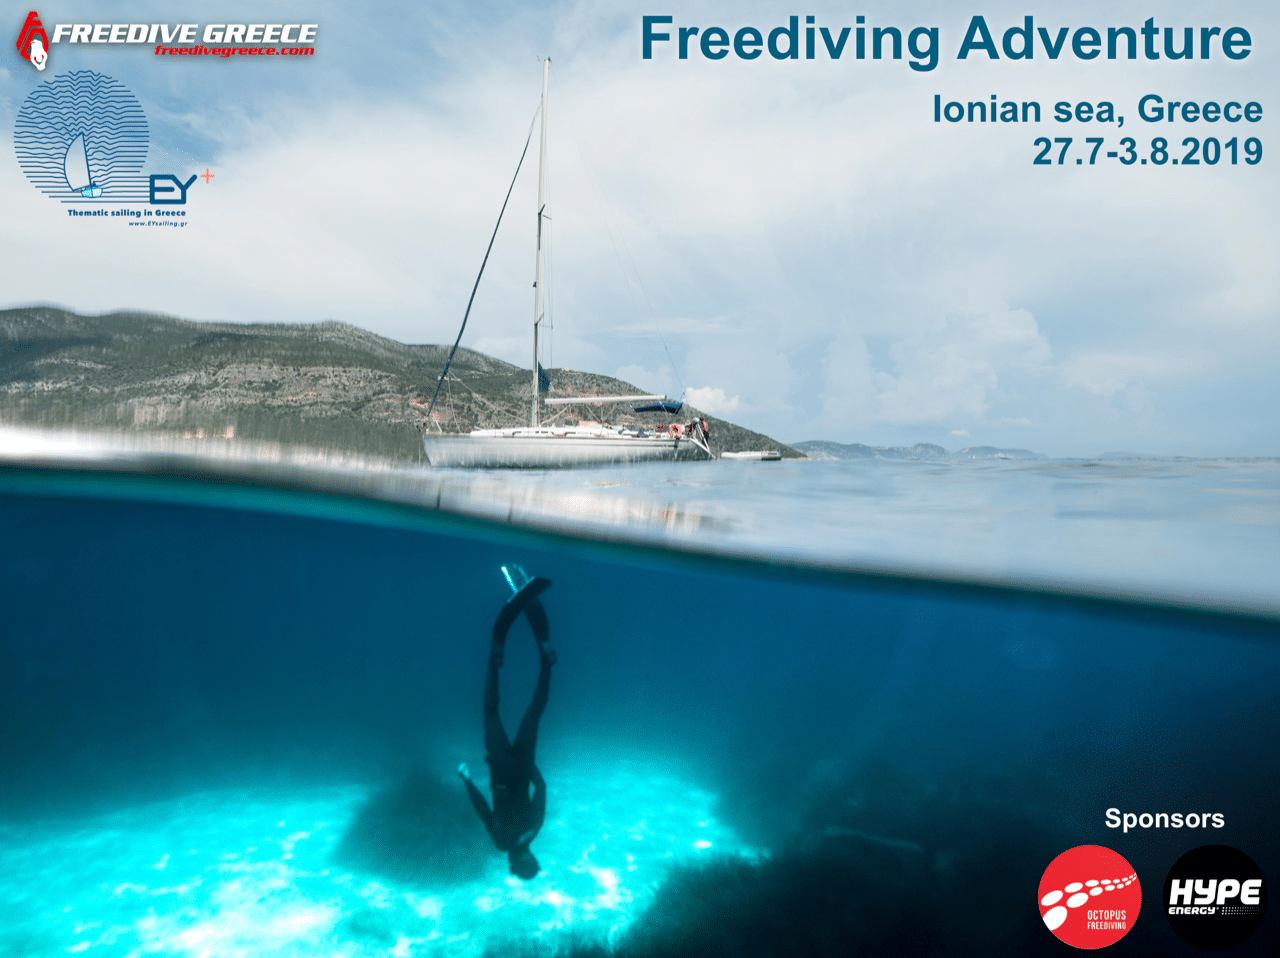 EYsailing and Freedive Greece are once again organizing a sailing trip this coming summer.